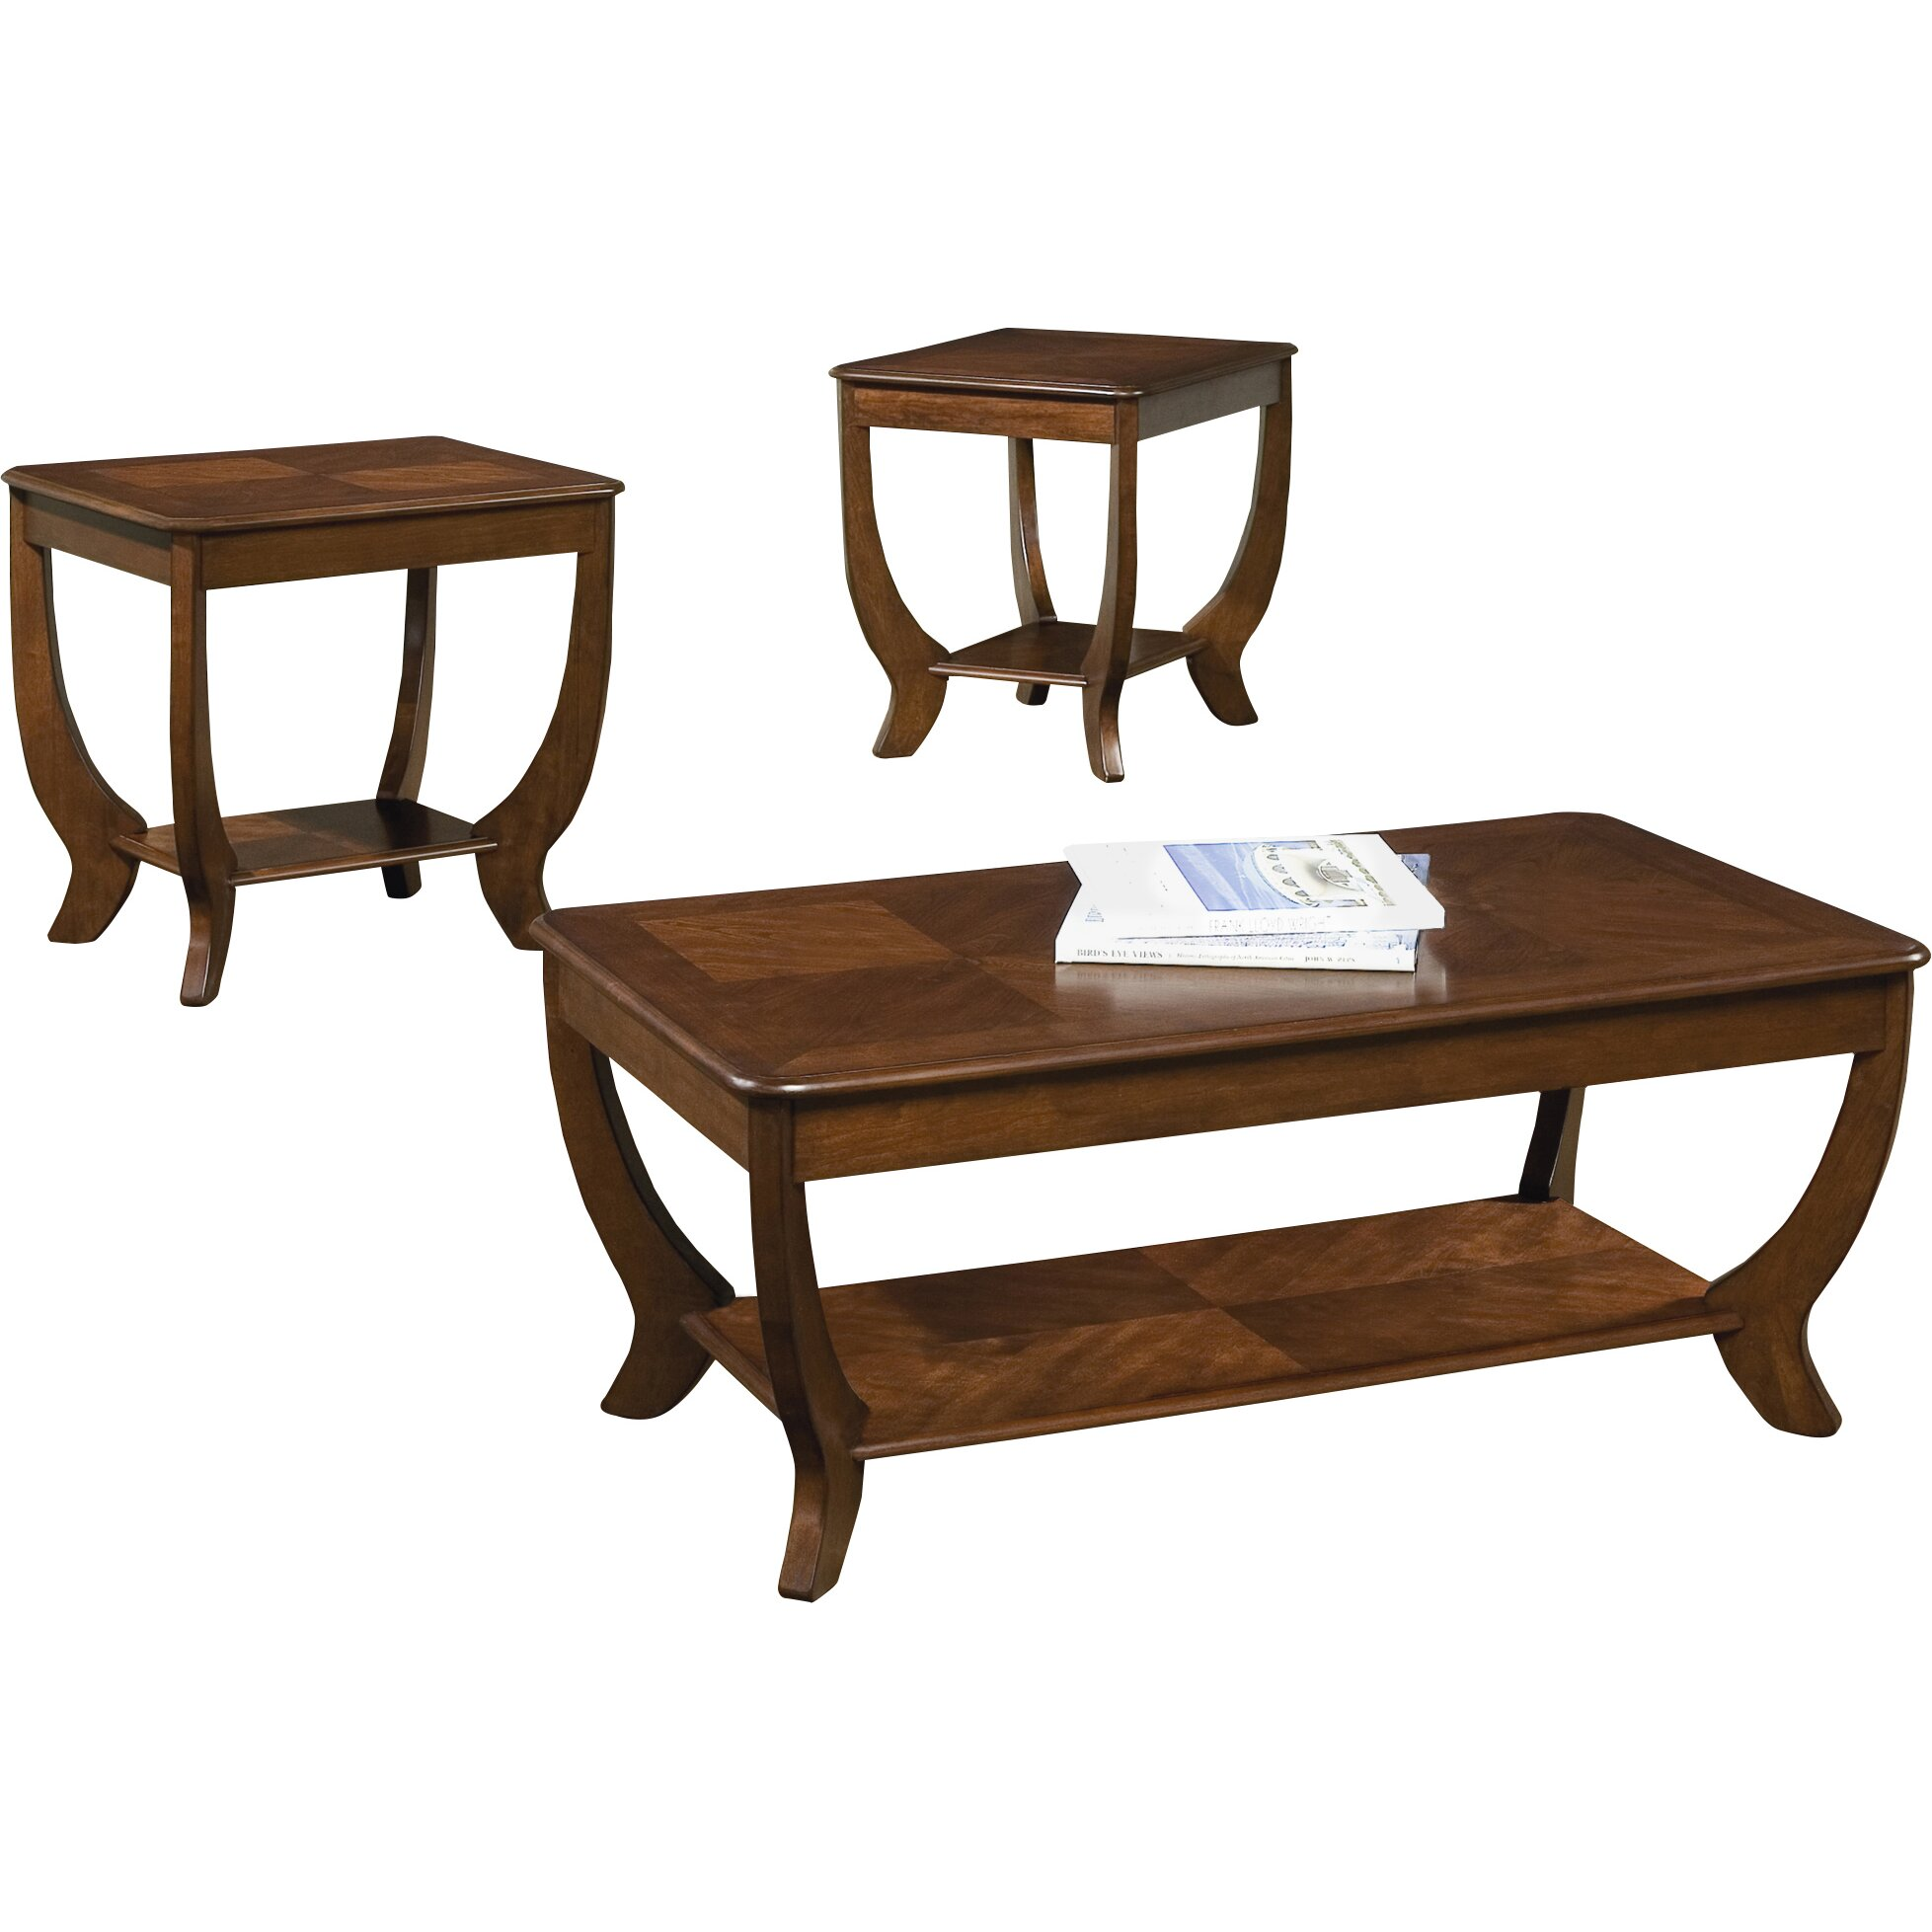 Rosalind wheeler pettigrew 3 piece coffee table set reviews 3 set coffee tables